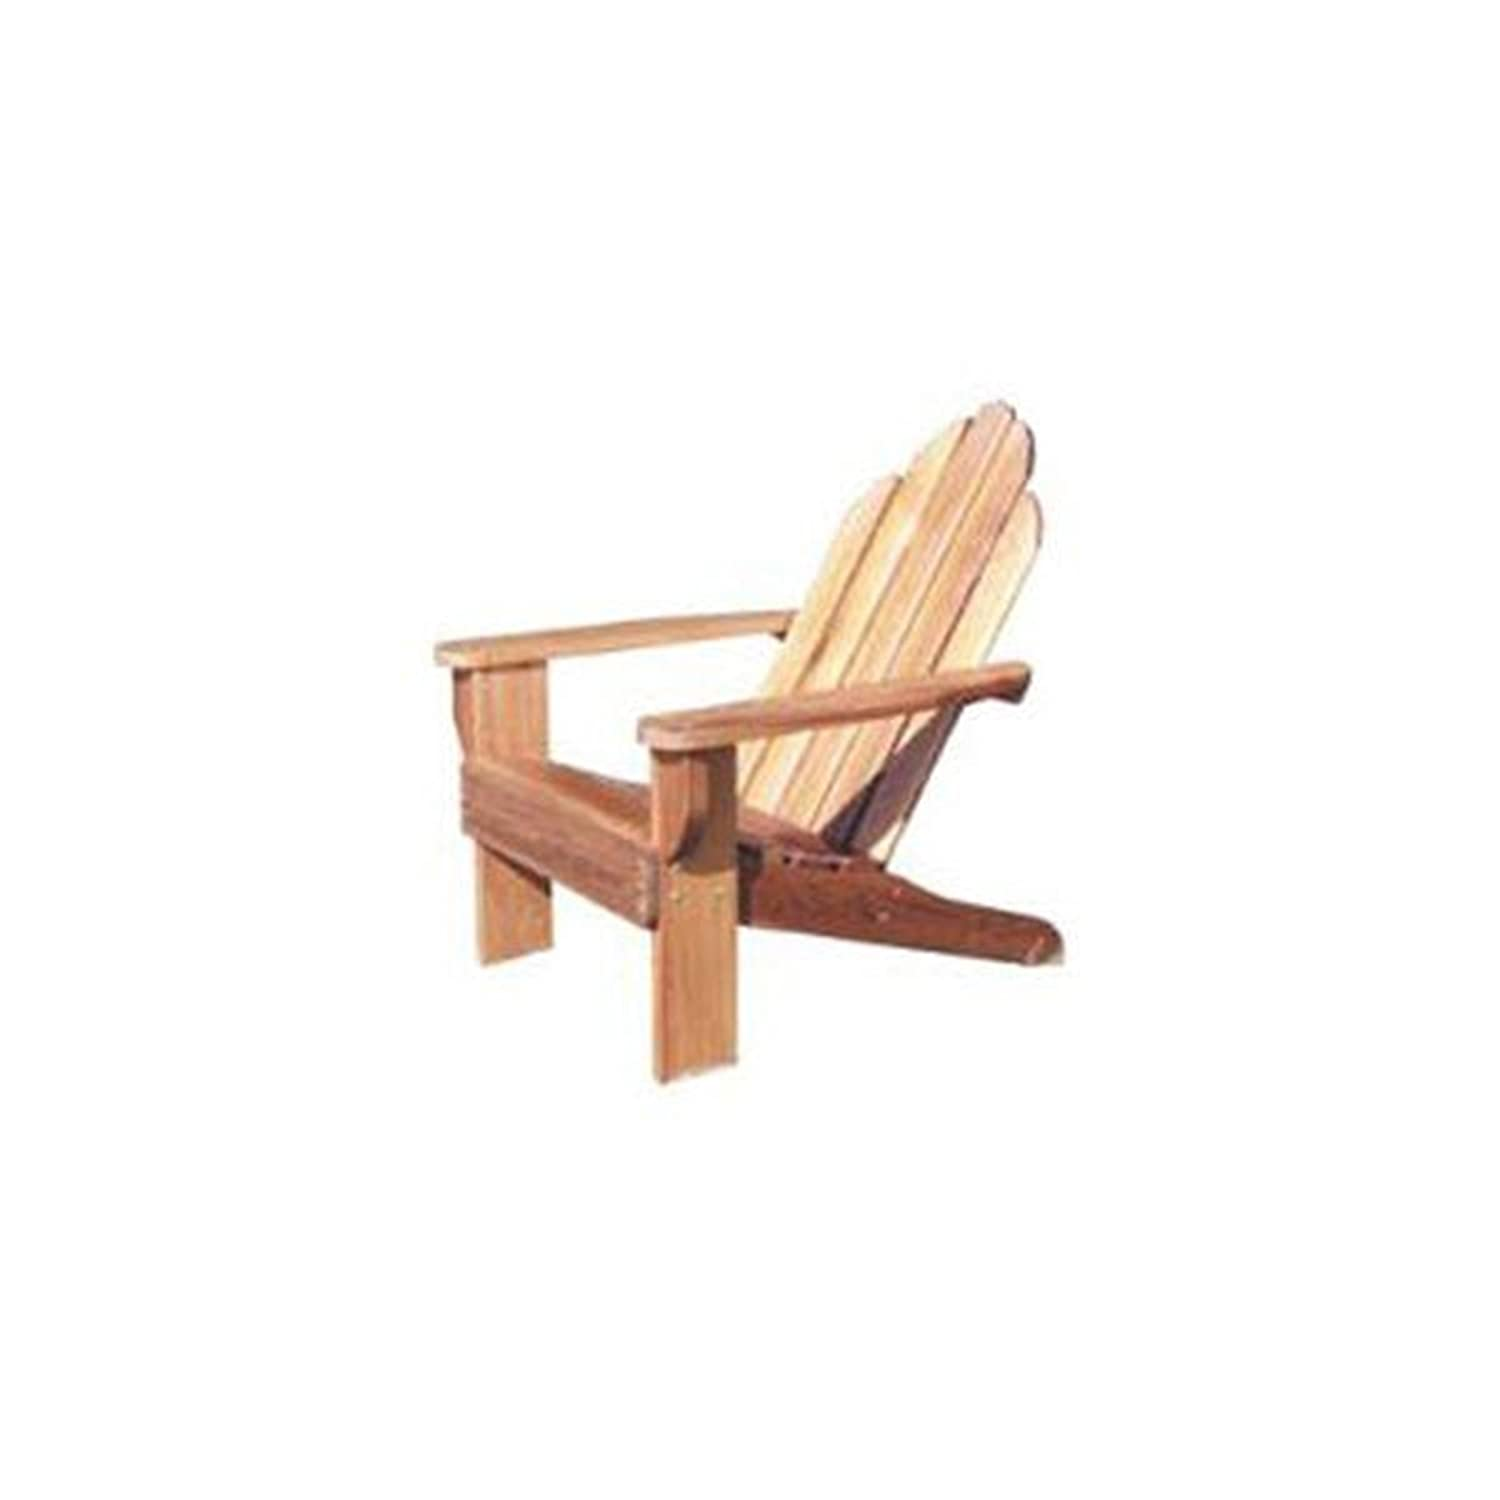 Classic Adirondack Chair Plans Woodworking Project Paper Plan